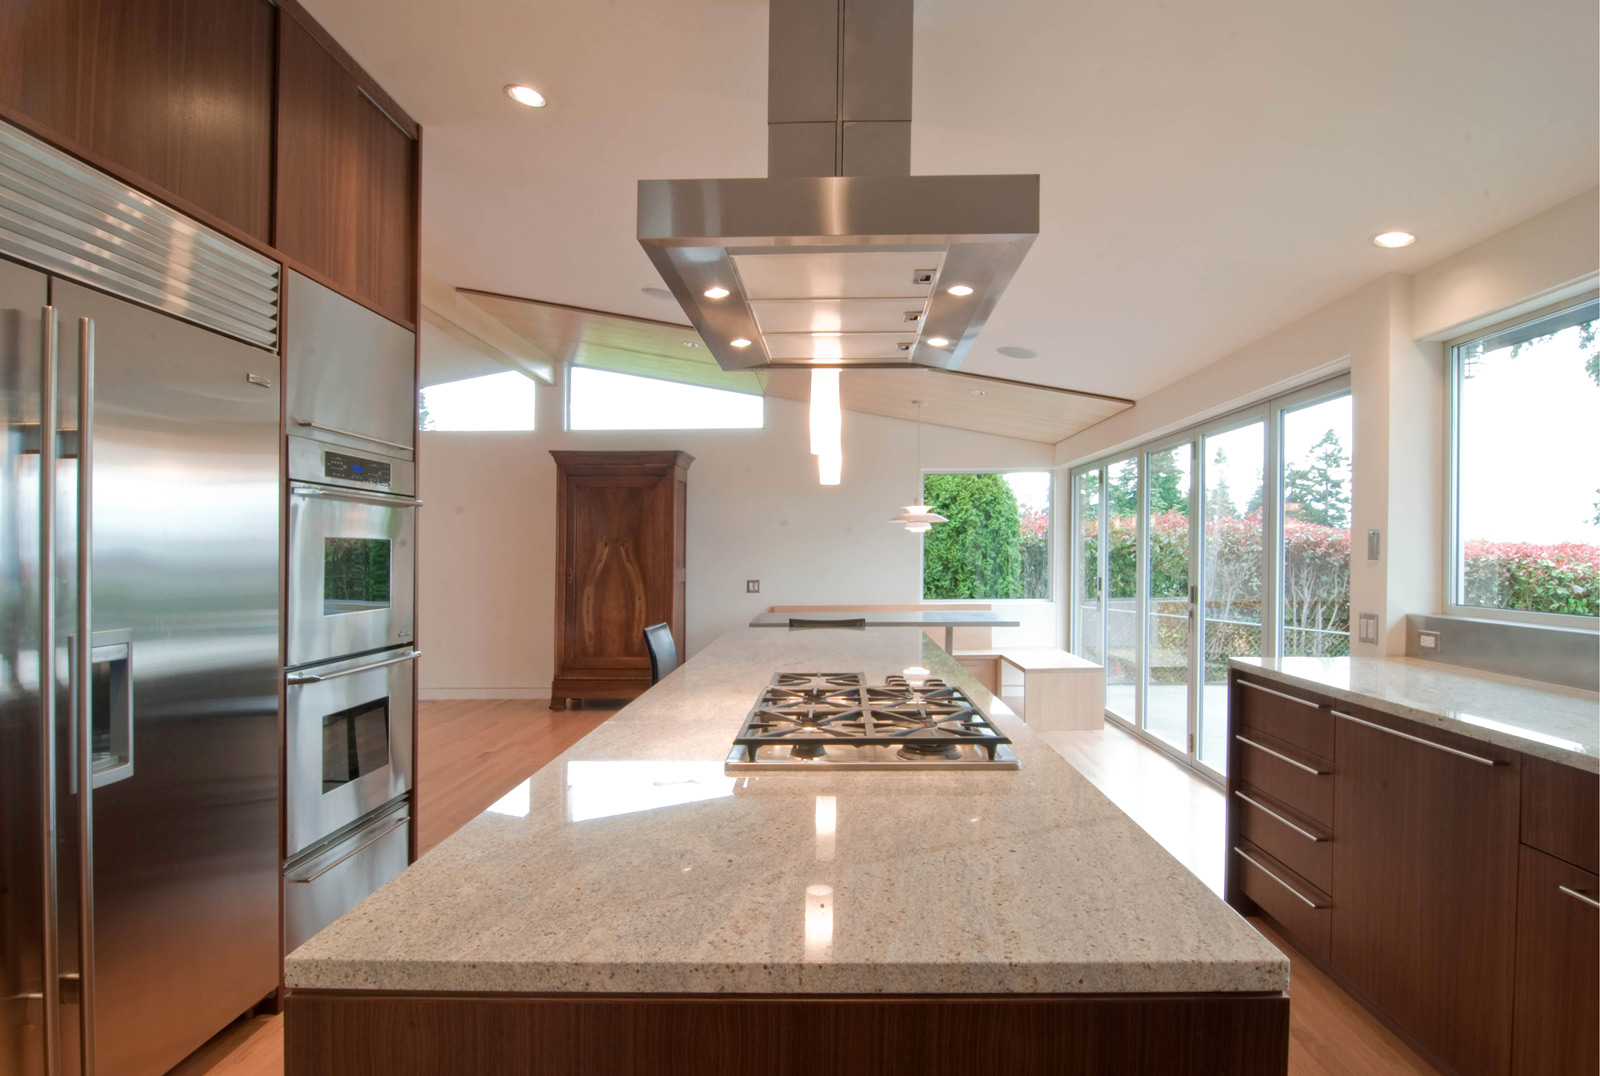 Modern Kitchen Hoods design strategies for kitchen hood venting | build blog